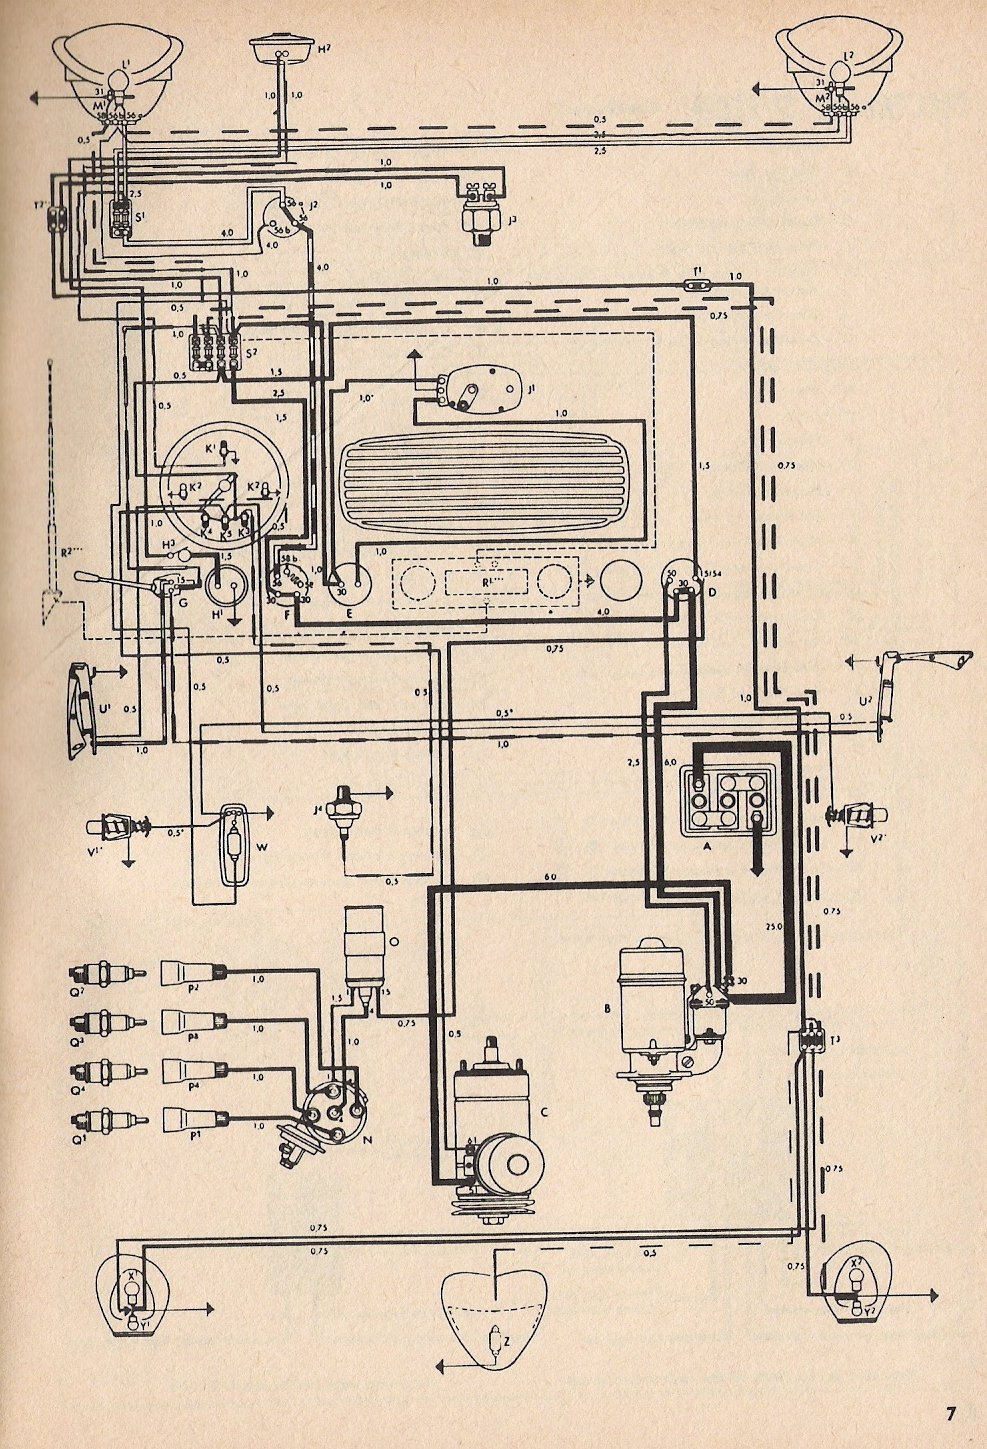 bug_54 thesamba com type 1 wiring diagrams 1971 vw bus wiring diagram at highcare.asia